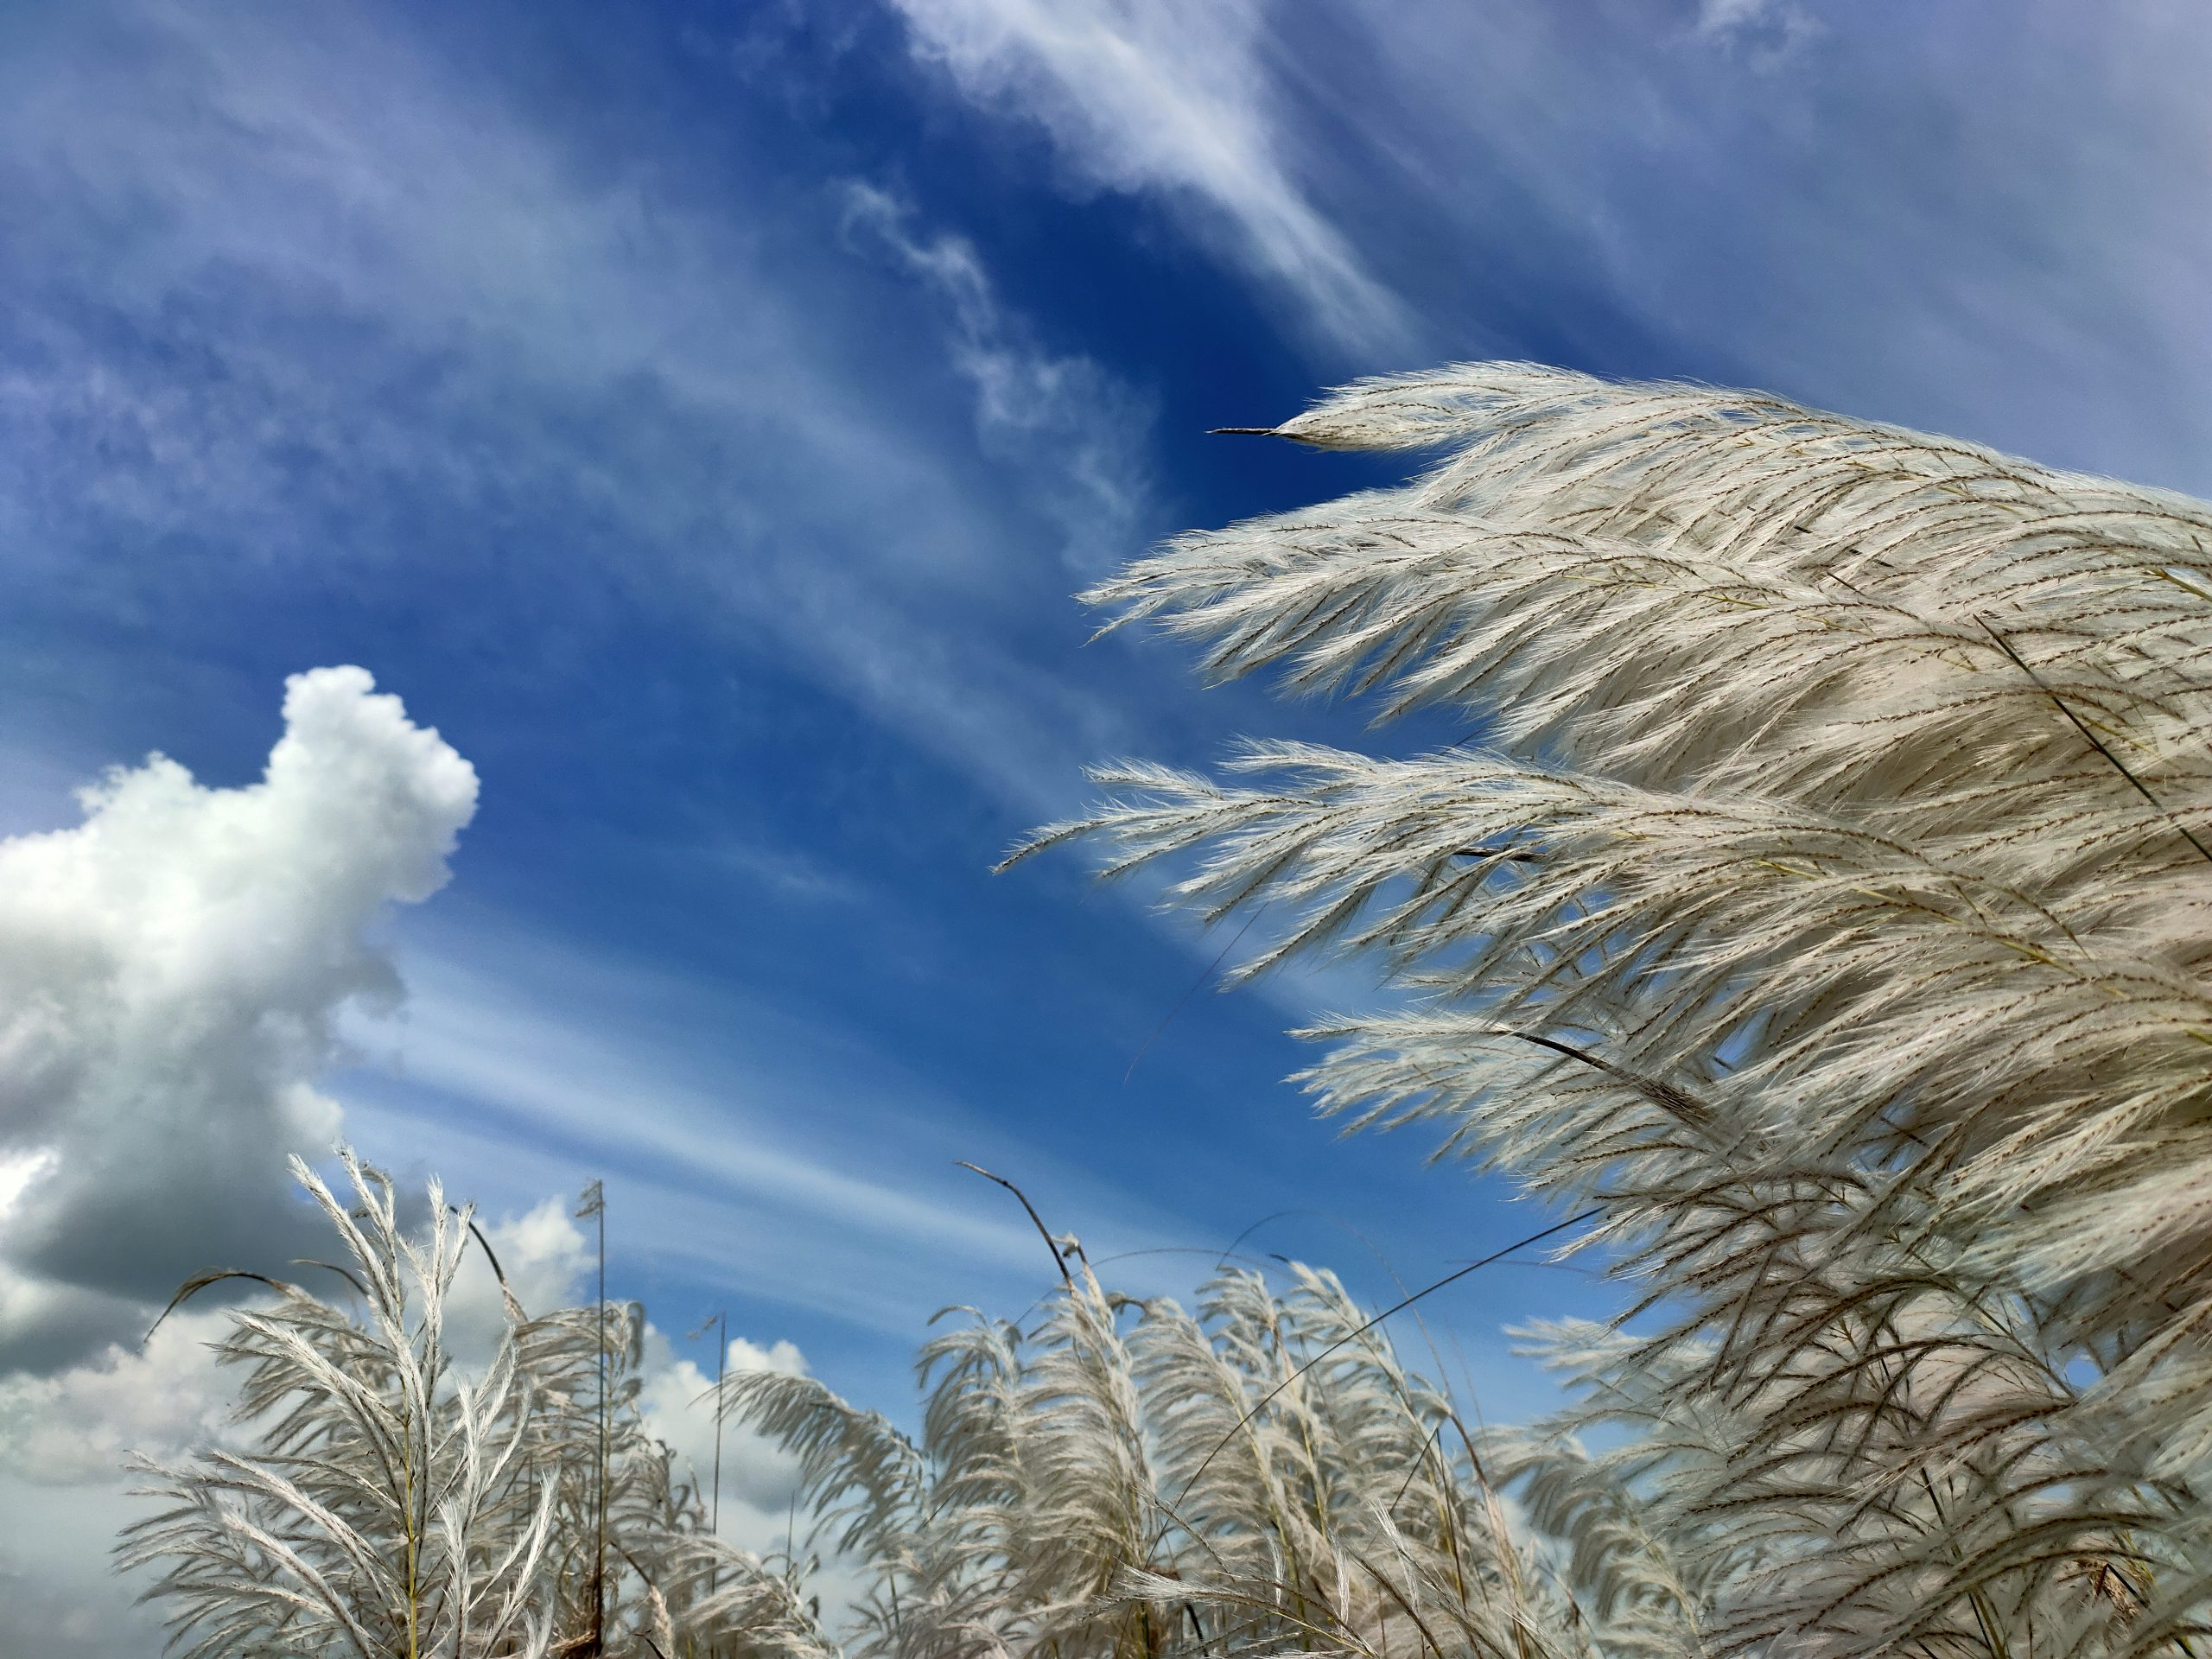 Phragmites Grass and a Cloudy Sky